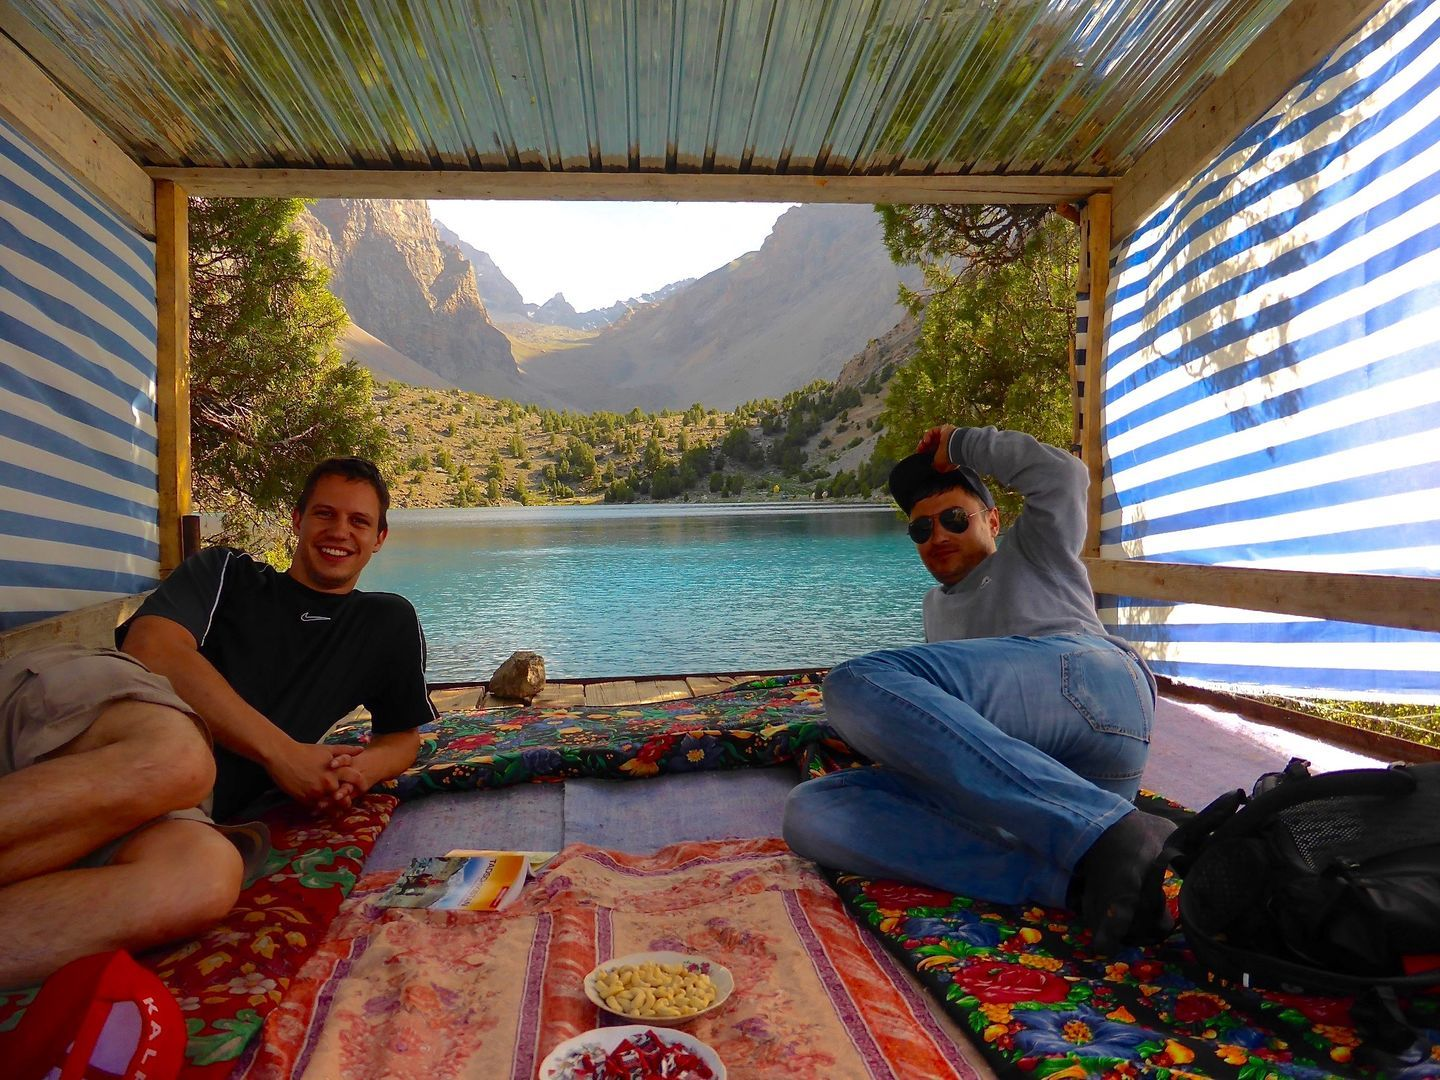 travelers dinner with nice view in Tajikistan, relaxing at the Fann Mountains Trekking Tour